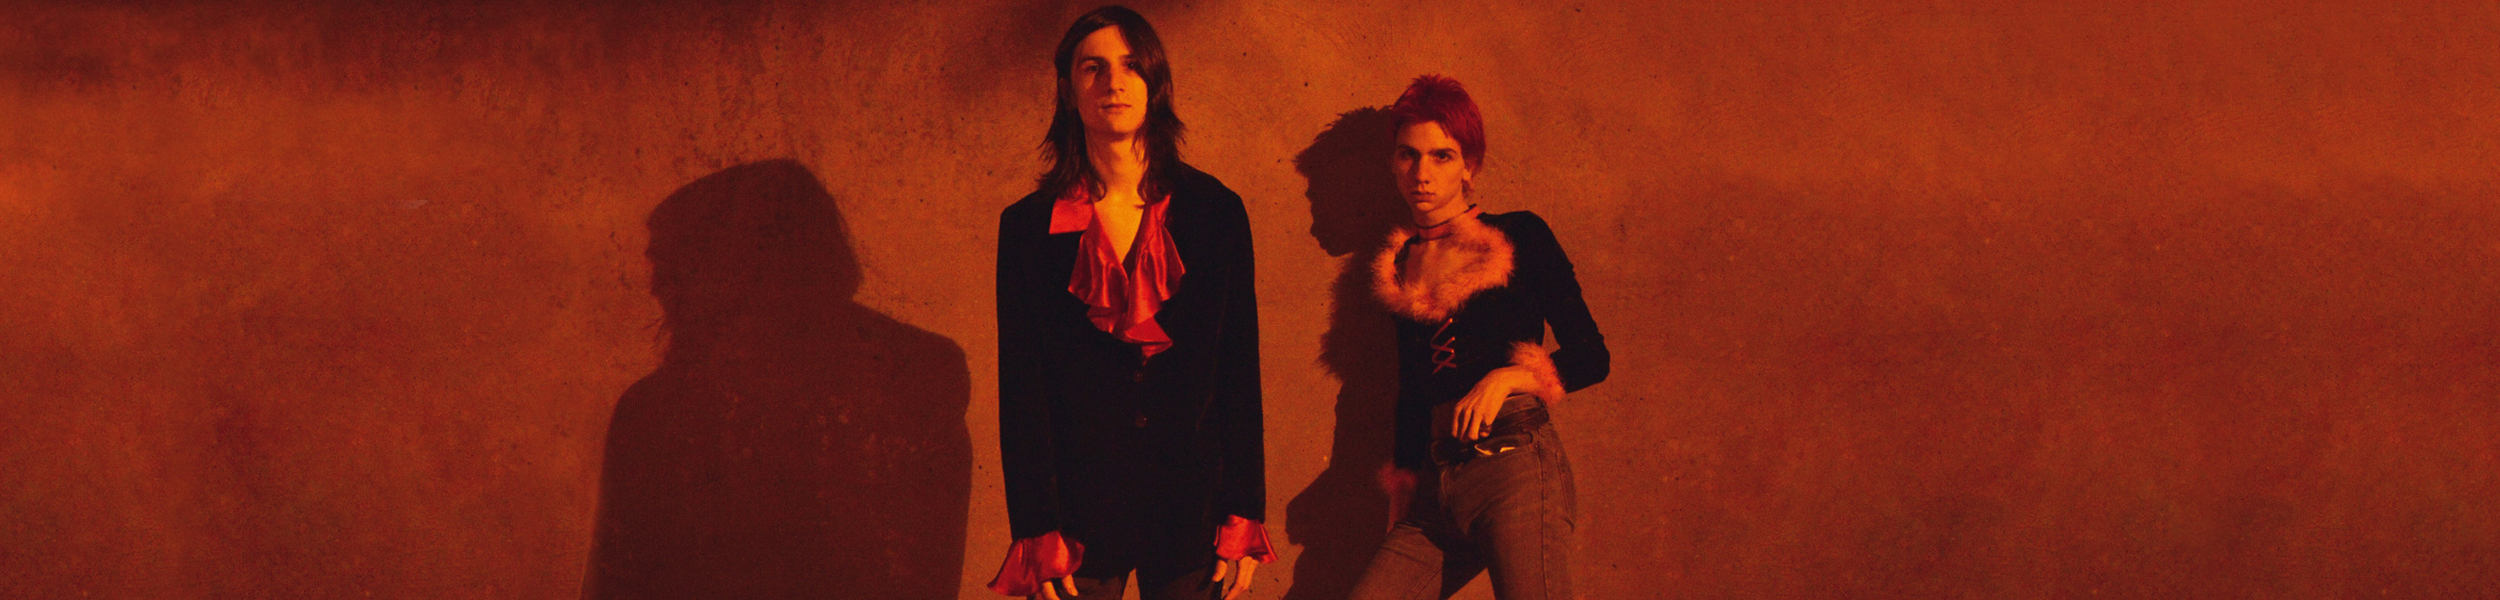 The Lemon Twigs - 'Brothers of Destruction' EP Announcement, Stream 'Night Song' Now